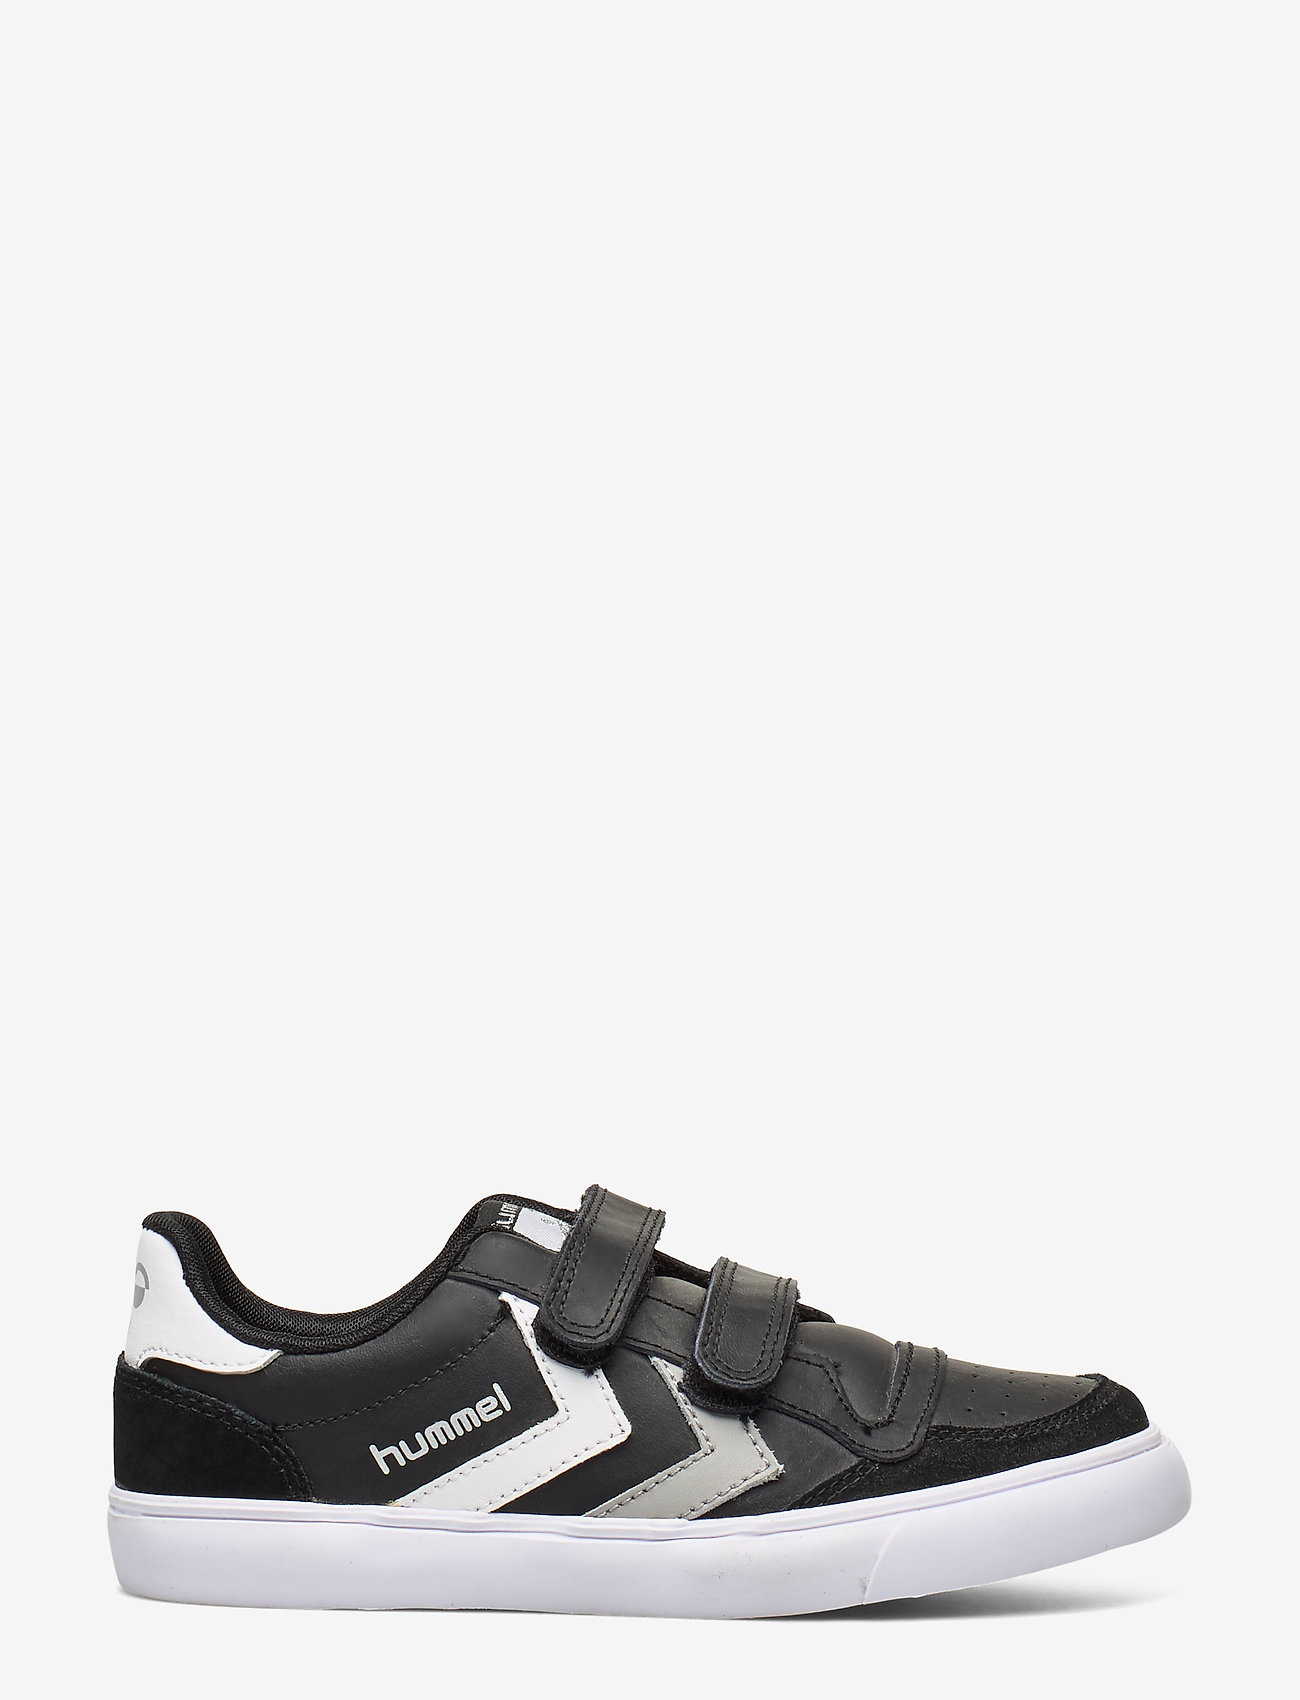 Hummel - HUMMEL STADIL JR LEATHER LOW - sneakers - black/white/grey - 1